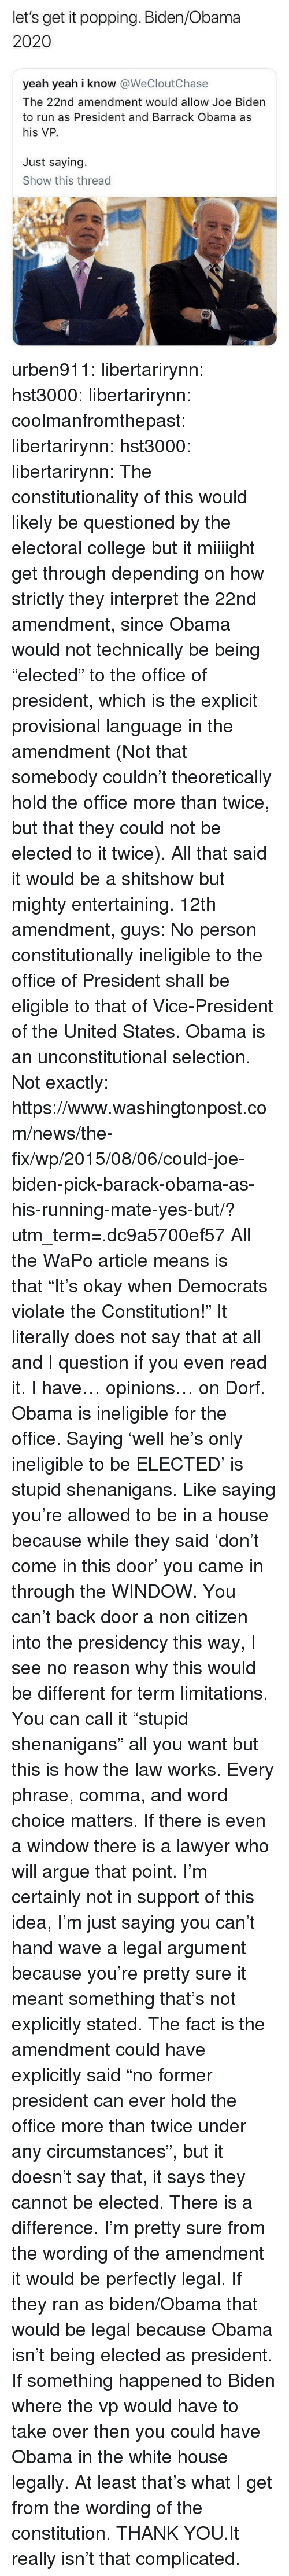 "Arguing, College, and Joe Biden: let's get it popping. Biden/Obama  2020  yeah yeah i know @WeCloutChase  The 22nd amendment would allow Joe Biden  to run as President and Barrack Obama as  his VP.  Just saying.  Show this thread  600 urben911:  libertarirynn:  hst3000:  libertarirynn: coolmanfromthepast:  libertarirynn:  hst3000:  libertarirynn:  The constitutionality of this would likely be questioned by the electoral college but it miiiight get through depending on how strictly they interpret the 22nd amendment, since Obama would not technically be being ""elected"" to the office of president, which is the explicit provisional language in the amendment (Not that somebody couldn't theoretically hold the office more than twice, but that they could not be elected to it twice).  All that said it would be a shitshow but mighty entertaining.  12th amendment, guys:  No person constitutionally ineligible to the office of President shall  be eligible to that of Vice-President of the United States.  Obama is an unconstitutional selection.   Not exactly: https://www.washingtonpost.com/news/the-fix/wp/2015/08/06/could-joe-biden-pick-barack-obama-as-his-running-mate-yes-but/?utm_term=.dc9a5700ef57  All the WaPo article means is that ""It's okay when Democrats violate the Constitution!""  It literally does not say that at all and I question if you even read it.  I have… opinions… on Dorf. Obama is ineligible for the office. Saying 'well he's only ineligible to be ELECTED' is stupid shenanigans. Like saying you're allowed to be in a house because while they said 'don't come in this door' you came in through the WINDOW. You can't back door a non citizen into the presidency this way, I see no reason why this would be different for term limitations.  You can call it ""stupid shenanigans"" all you want but this is how the law works. Every phrase, comma, and word choice matters. If there is even a window there is a lawyer who will argue that point. I'm certainly not in support of this idea, I'm just saying you can't hand wave a legal argument because you're pretty sure it meant something that's not explicitly stated. The fact is the amendment could have explicitly said ""no former president can ever hold the office more than twice under any circumstances"", but it doesn't say that, it says they cannot be elected. There is a difference.  I'm pretty sure from the wording of the amendment it would be perfectly legal. If they ran as biden/Obama that would be legal because Obama isn't being elected as president. If something happened to Biden where the vp would have to take over then you could have Obama in the white house legally. At least that's what I get from the wording of the constitution.  THANK YOU.It really isn't that complicated."